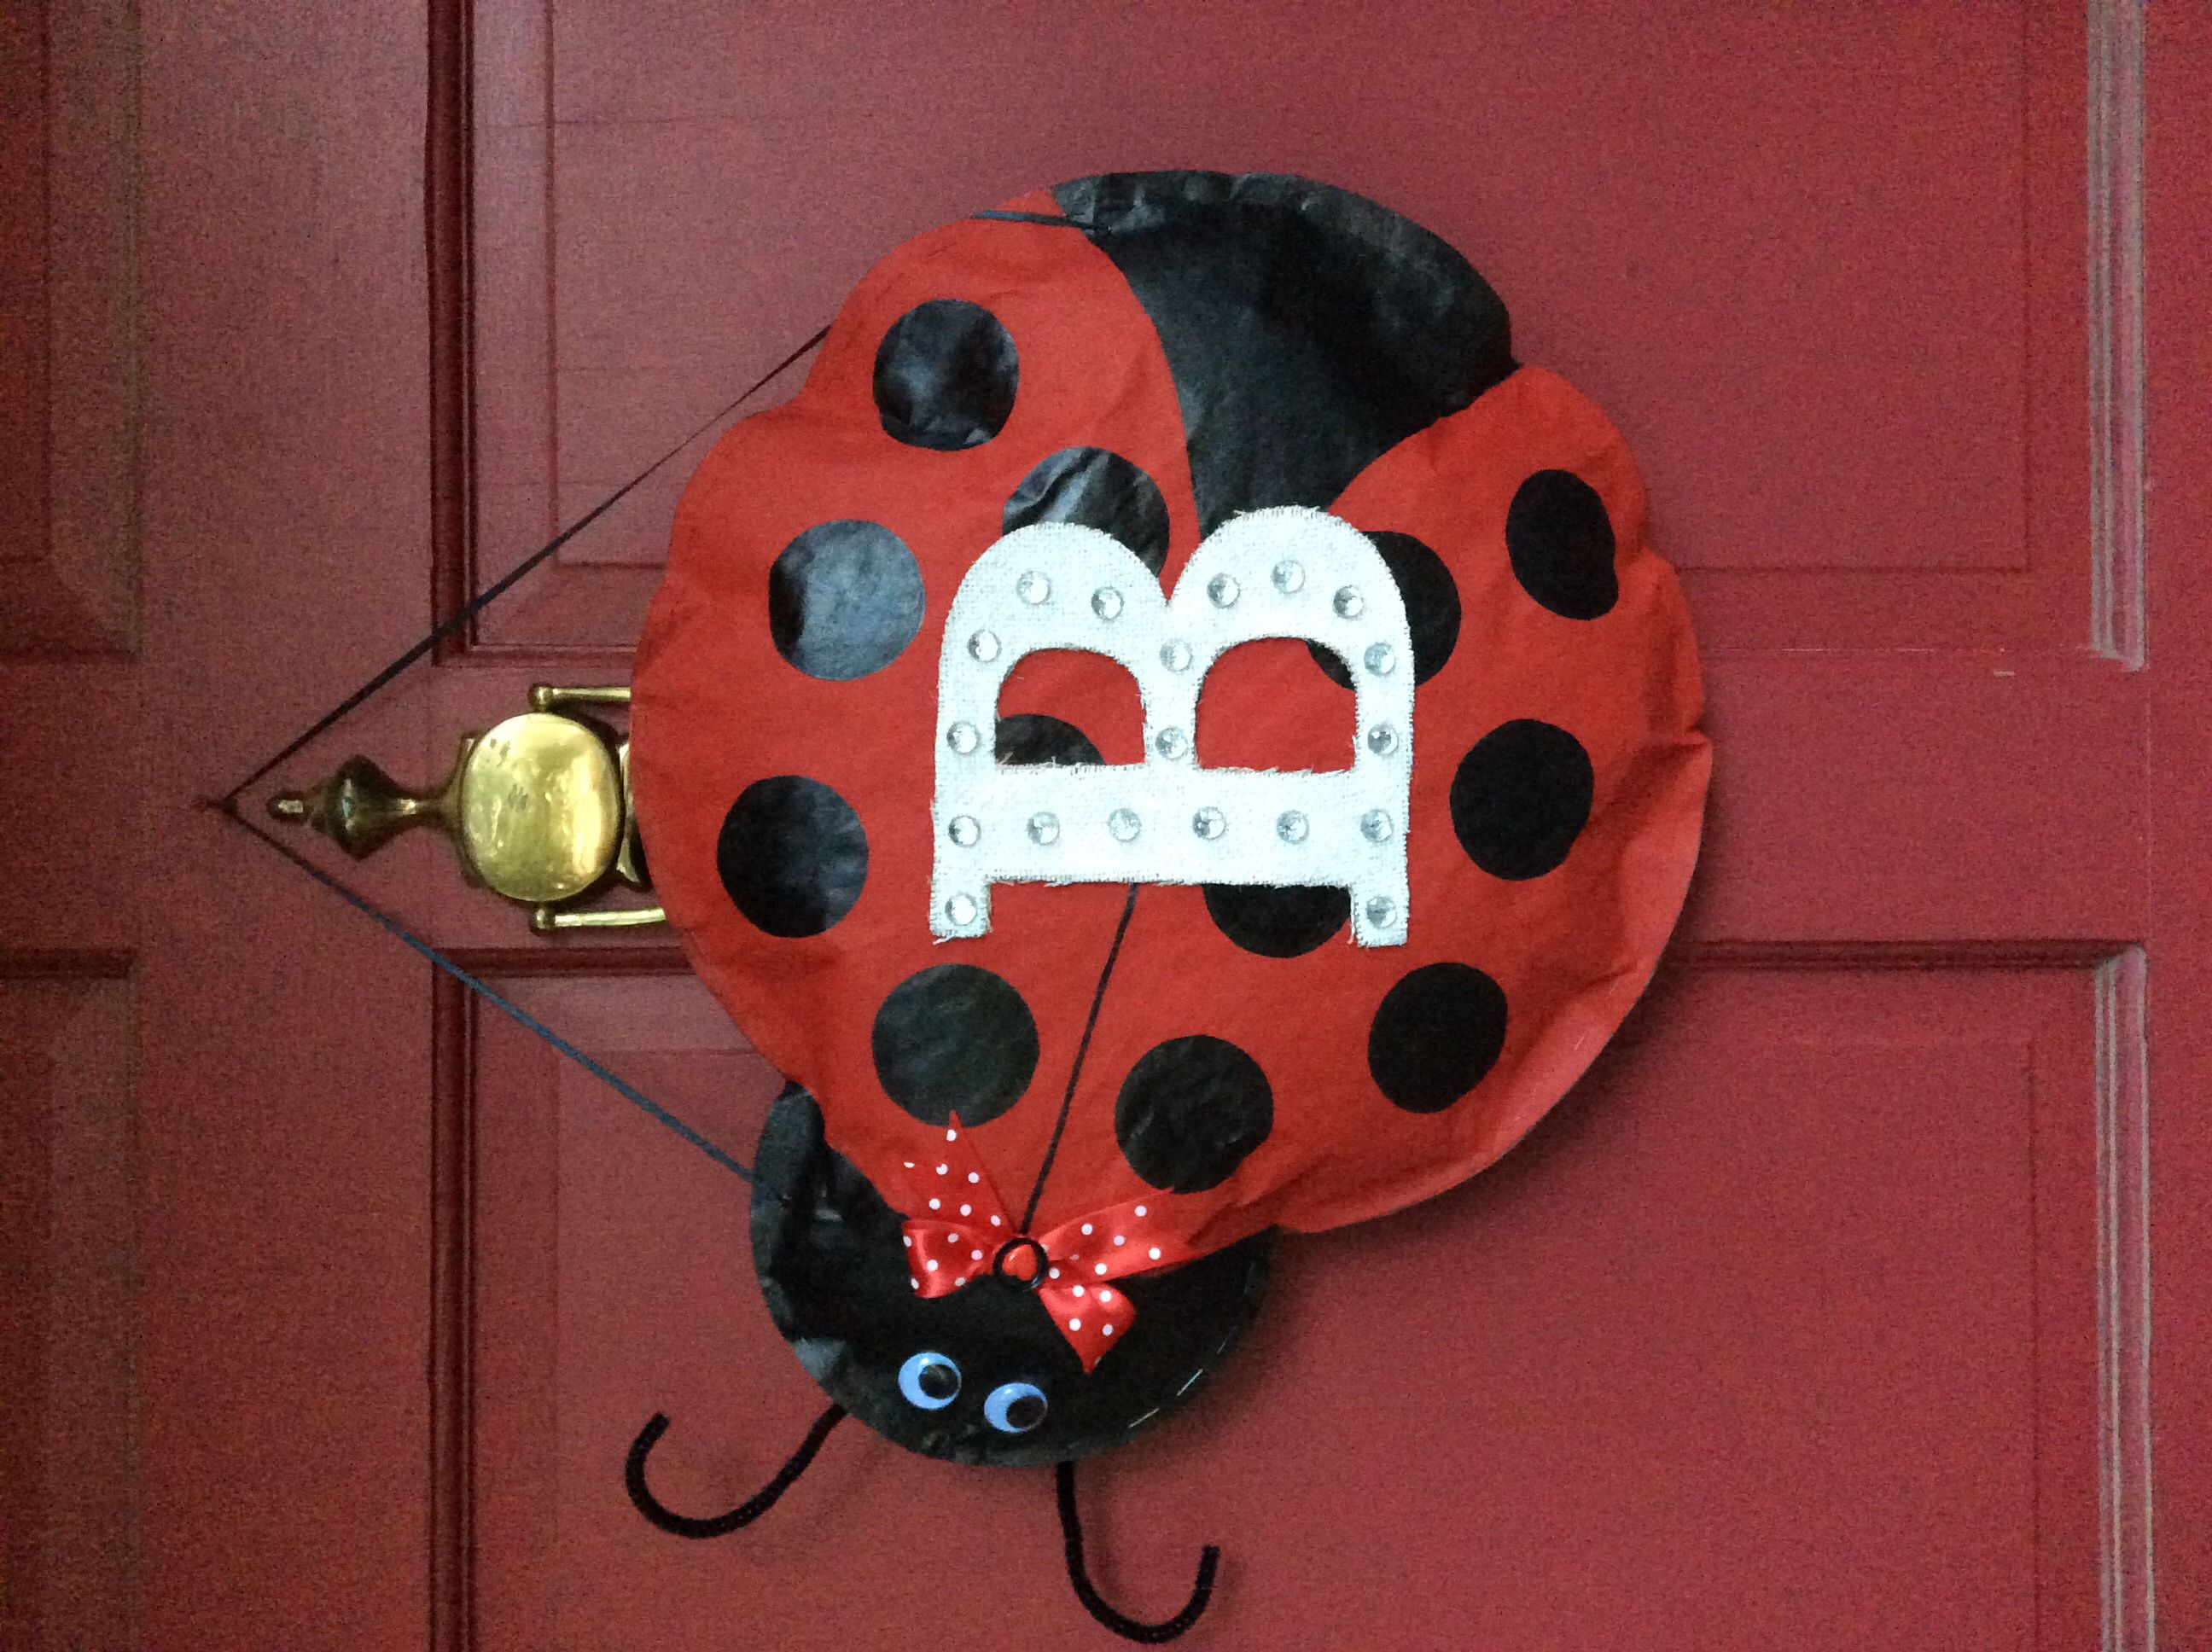 Ladybug Initialed Door Hanger Made From Brown Craft Paper Staple The Edges And Stuff With All Those Plastic Initial Door Hanger Door Hangers Ladybug